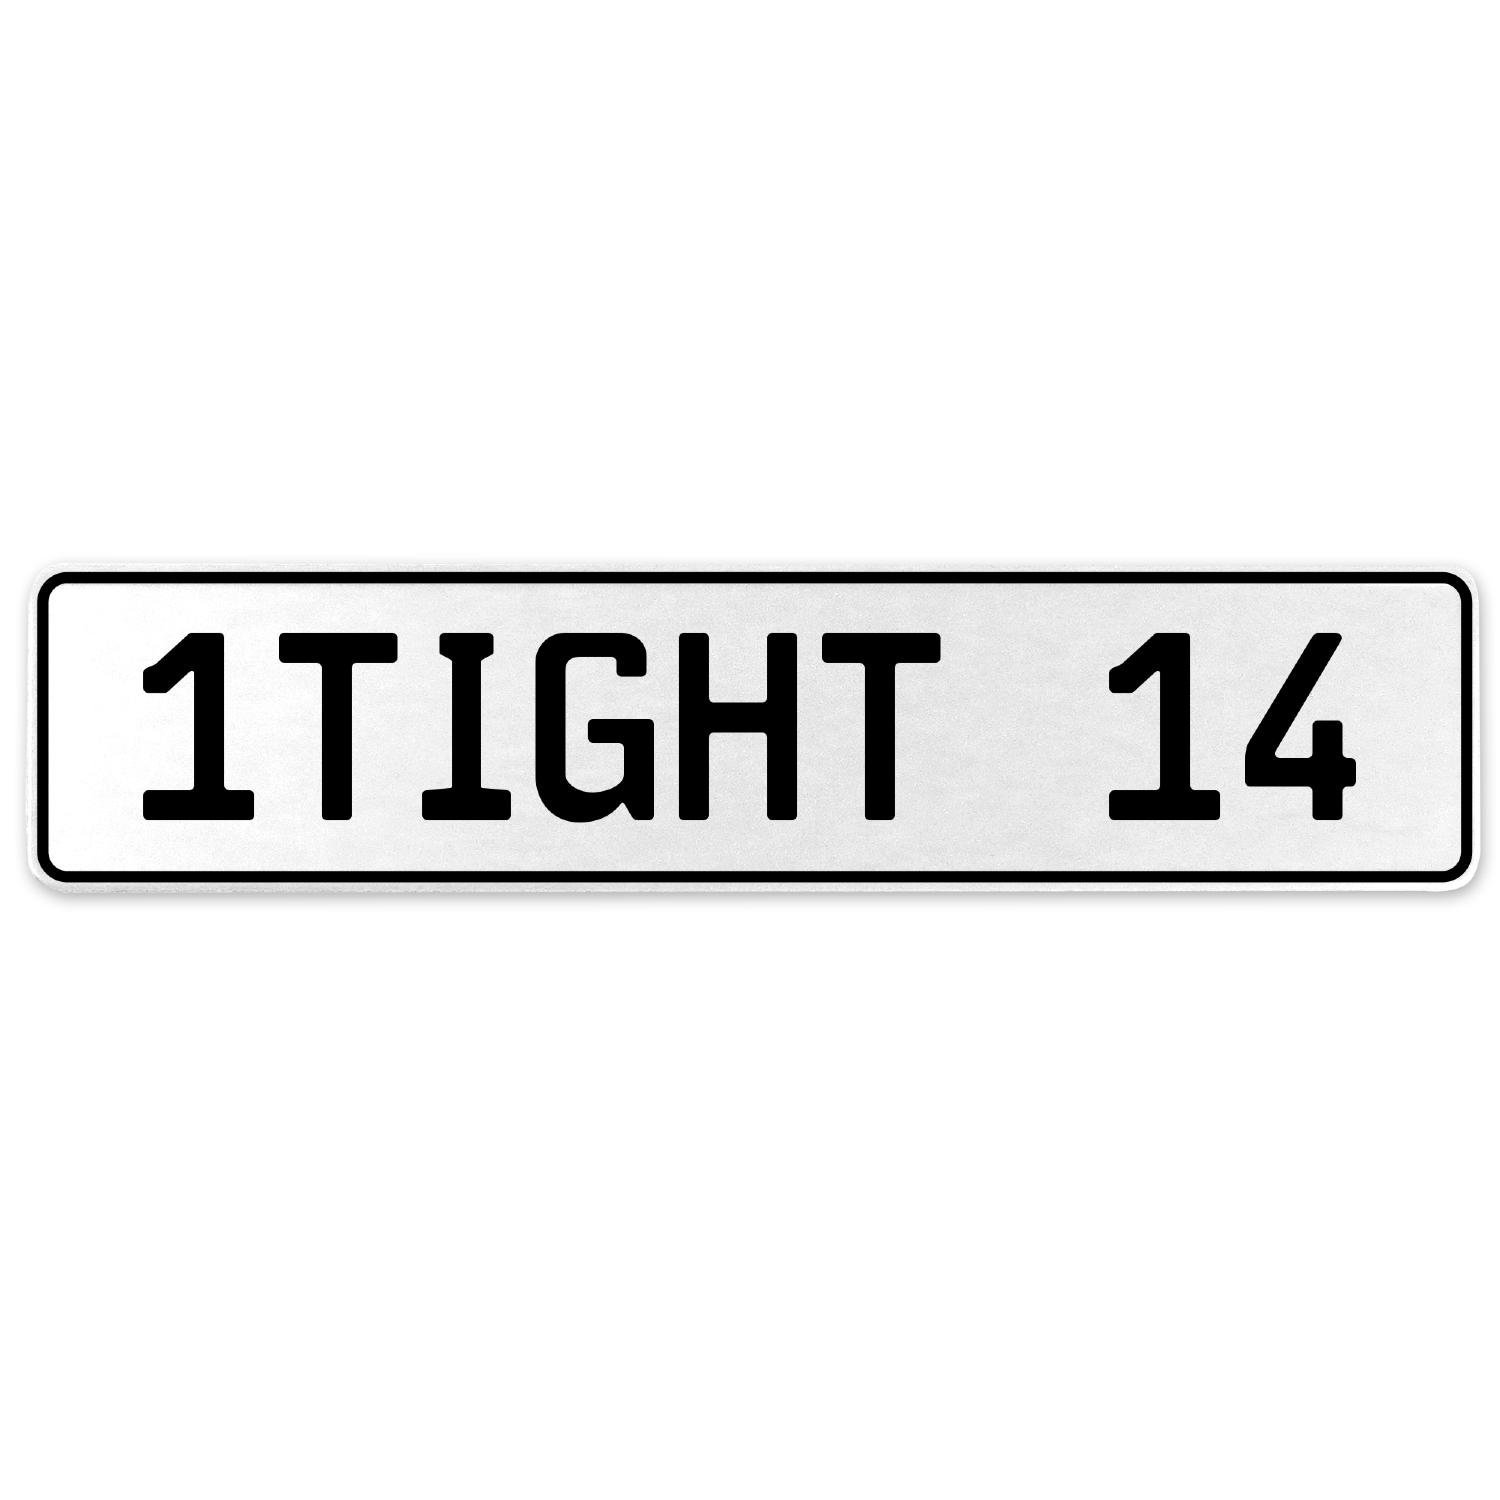 Vintage Parts 554809 1TIGHT 14 White Stamped Aluminum European License Plate